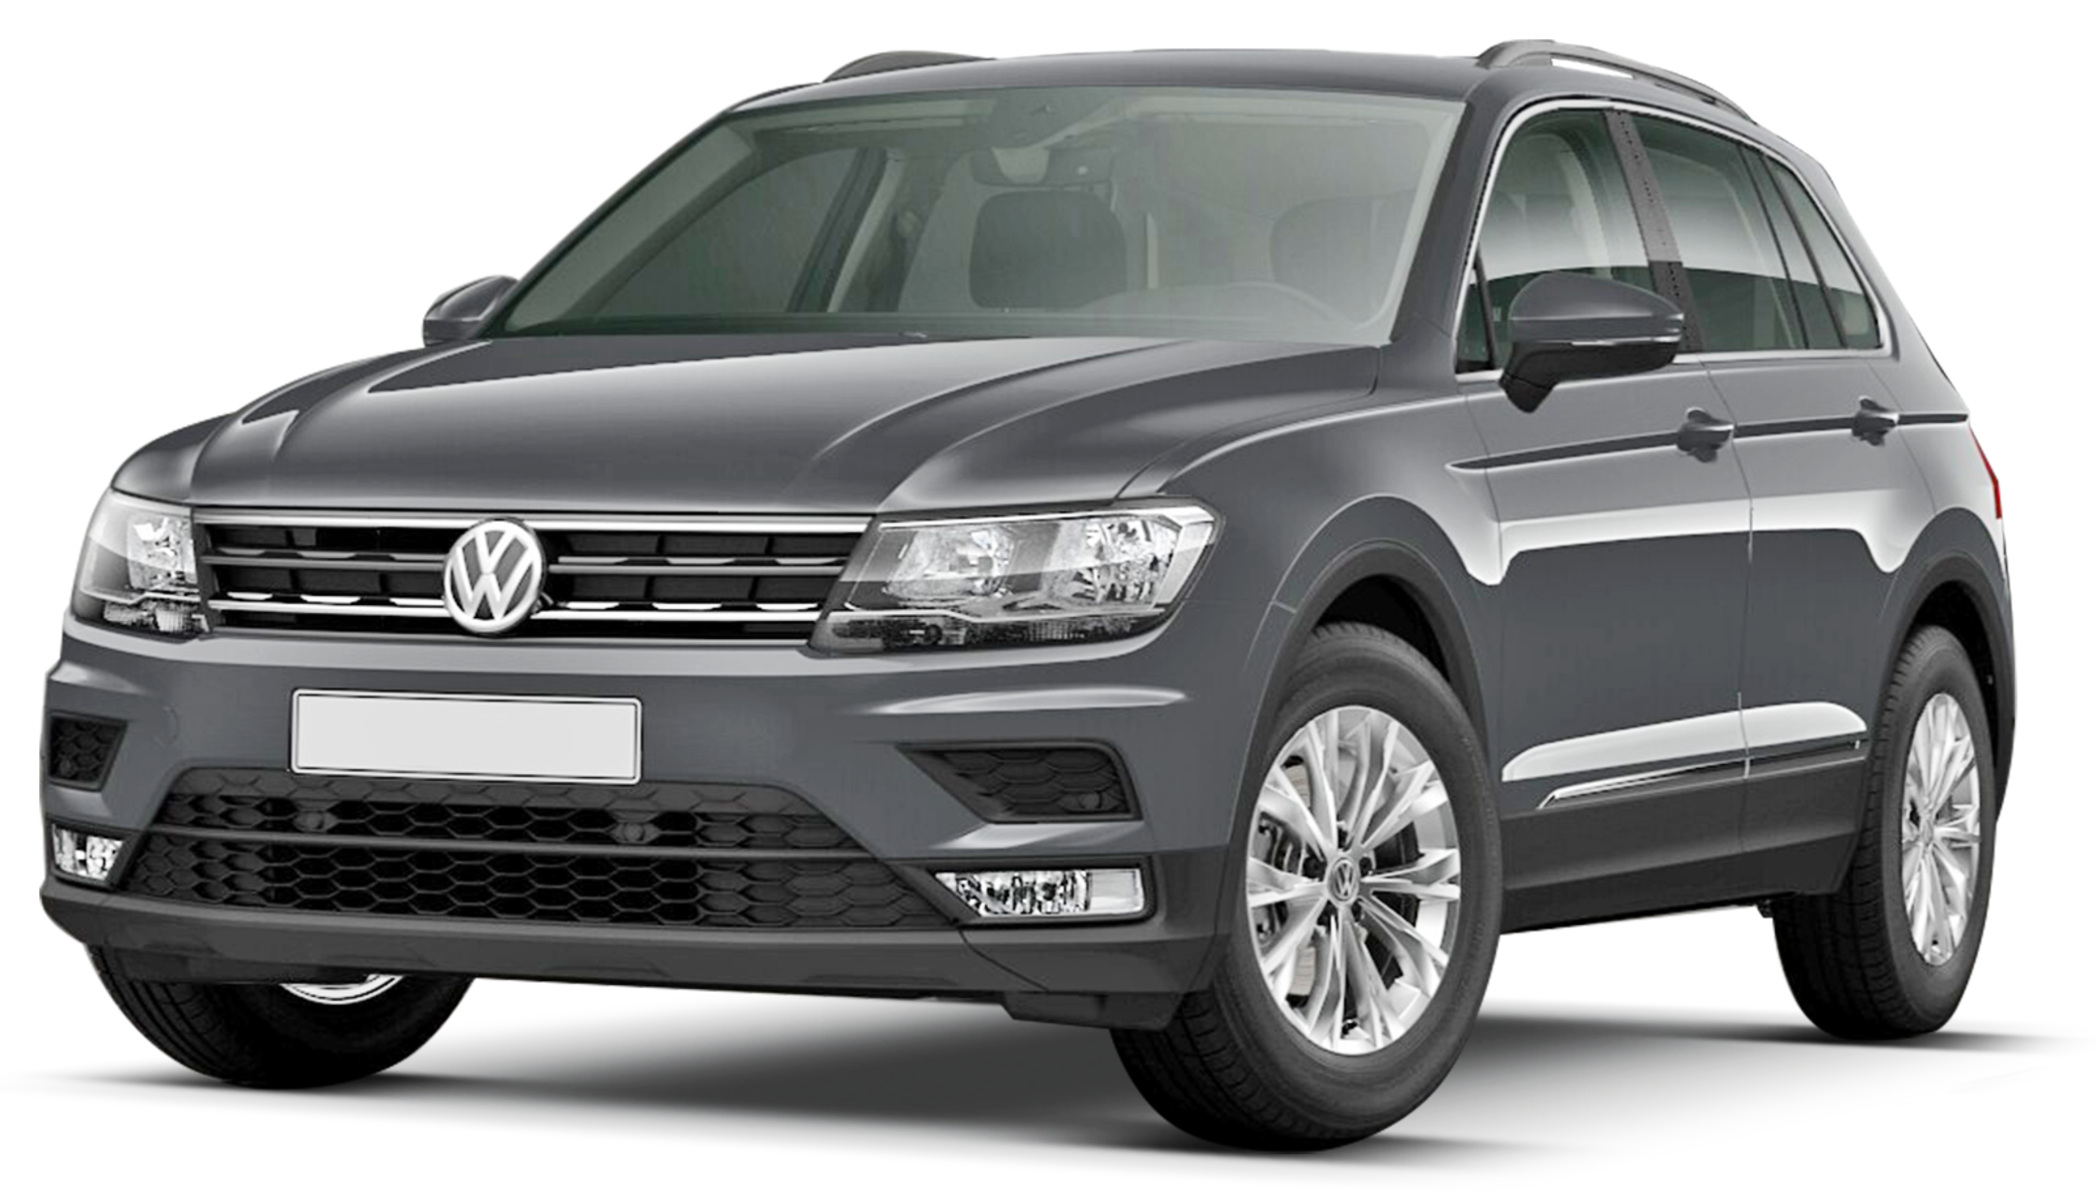 listino volkswagen tiguan prezzo scheda tecnica consumi foto. Black Bedroom Furniture Sets. Home Design Ideas